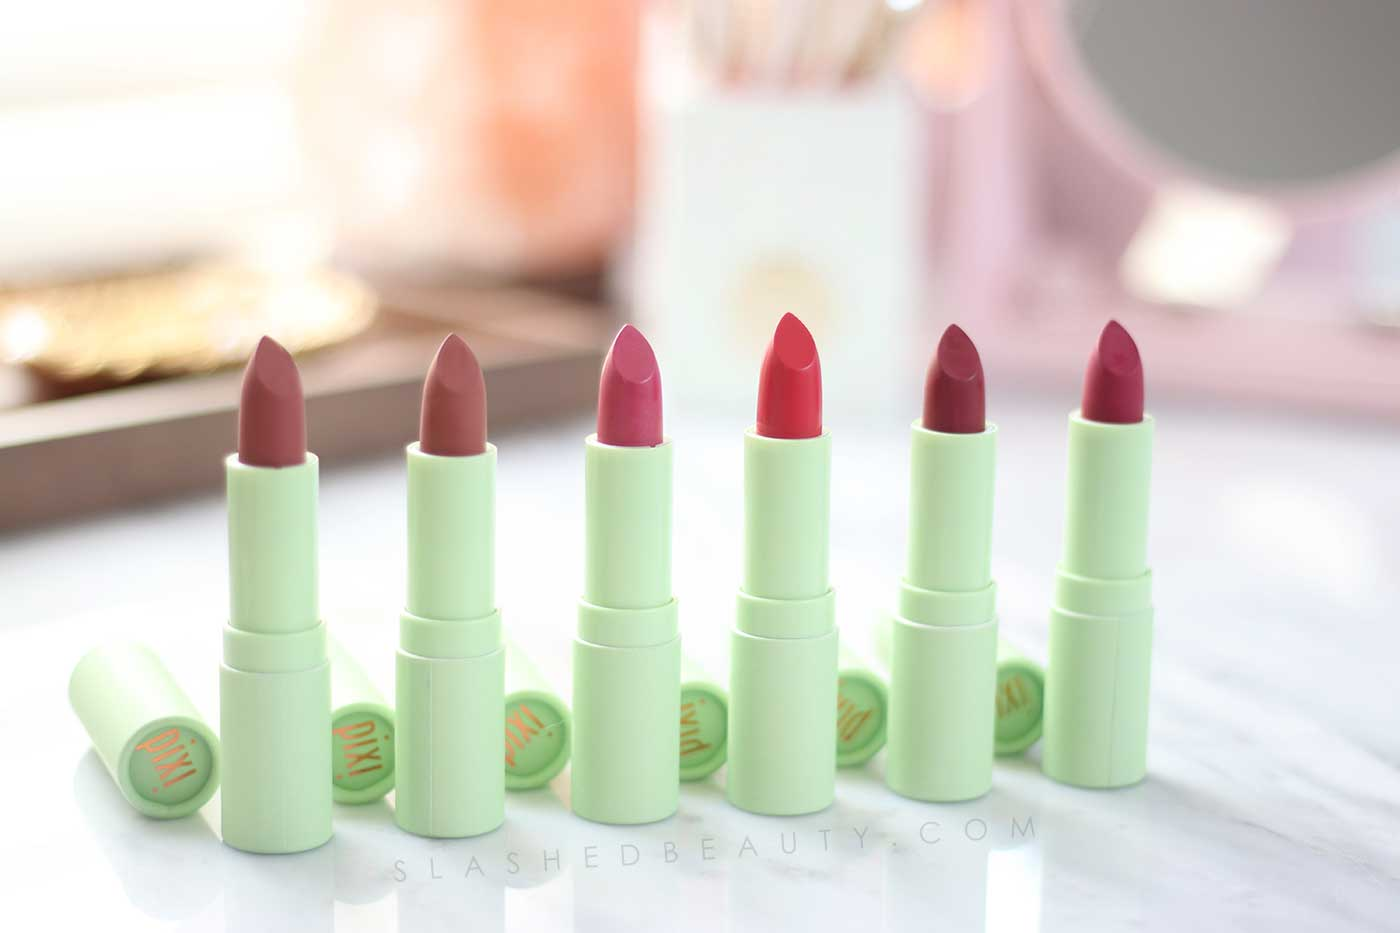 Moisturizing Lipsticks that Last! Pixi Naturellelips Review and Swatches | Slashed Beauty